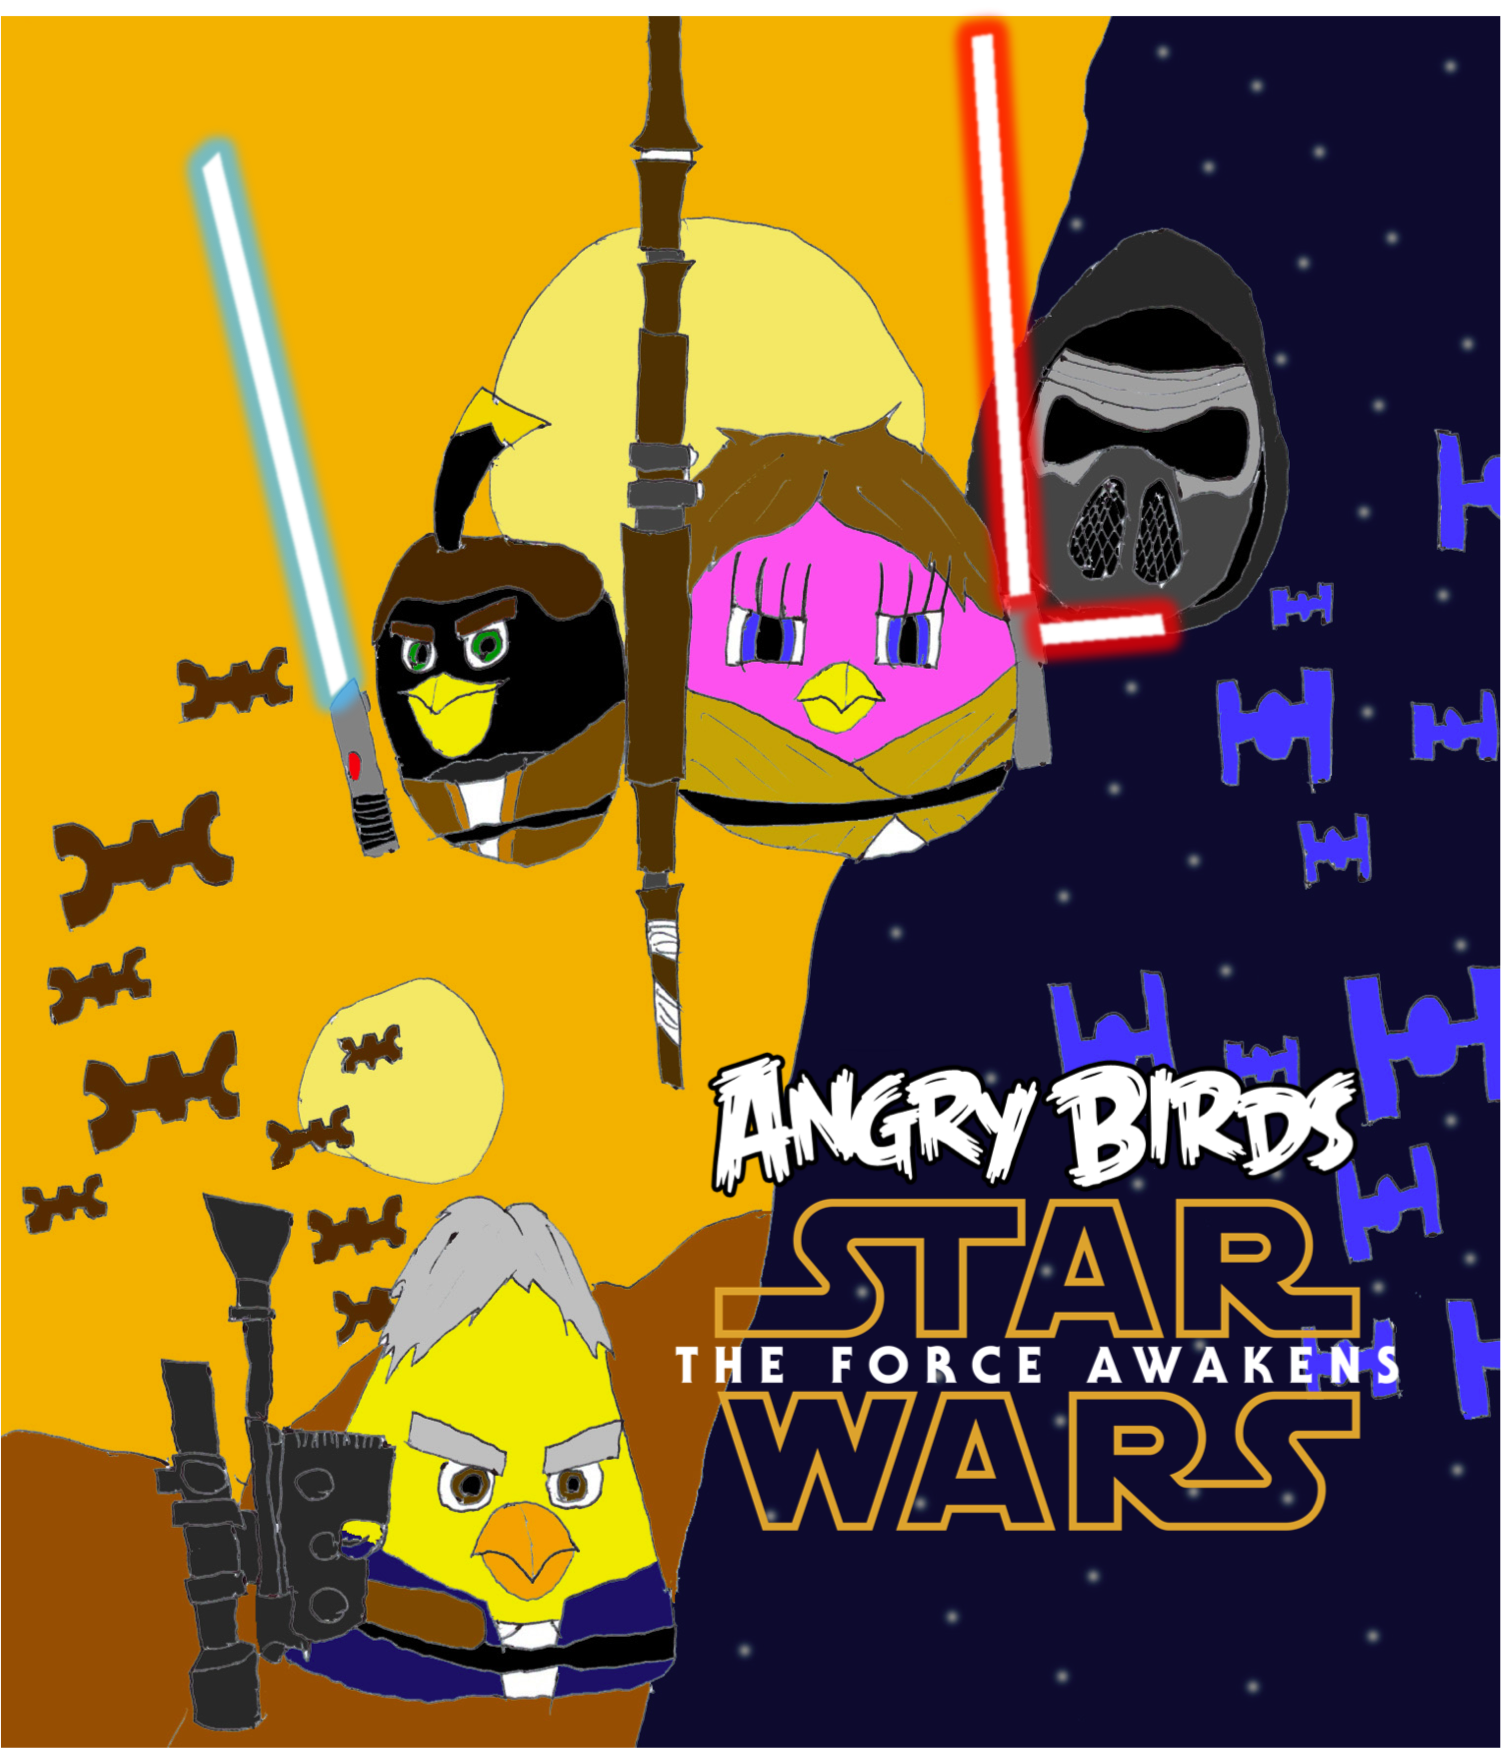 1501x1749 Angry Birds Star Wars The Force Awakens Poster By Fanangrybirds